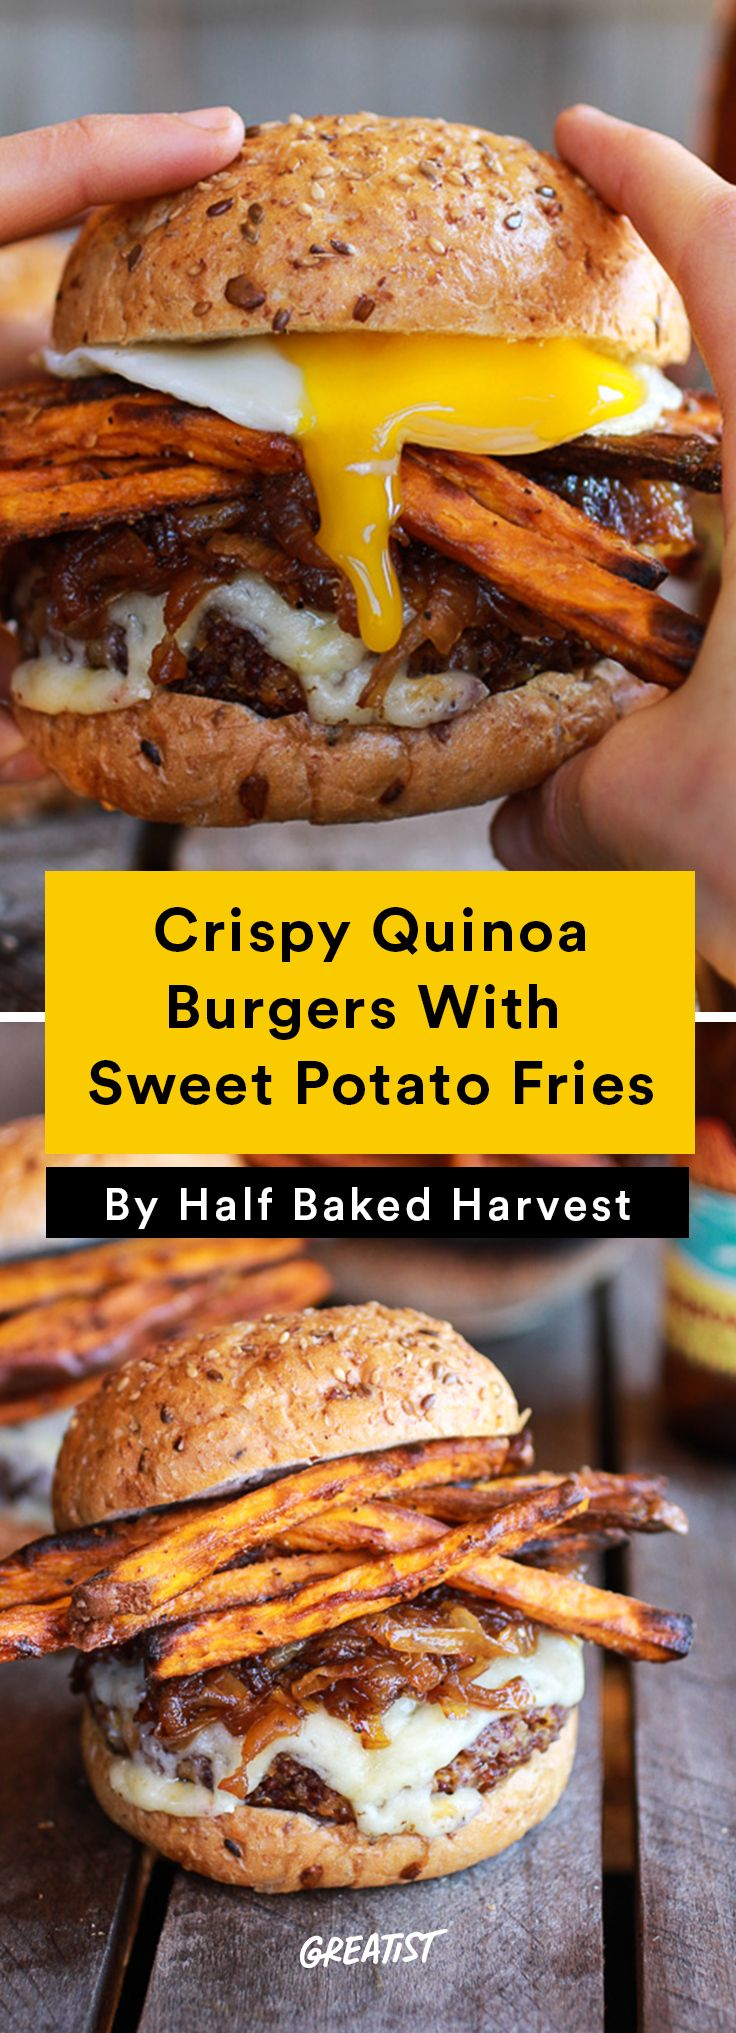 1. Epic Crispy Quinoa Burgers With Sweet Potato Fries #comfortfood #recipes http://greatist.com/eat/comfort-food-recipes-that-are-healthy